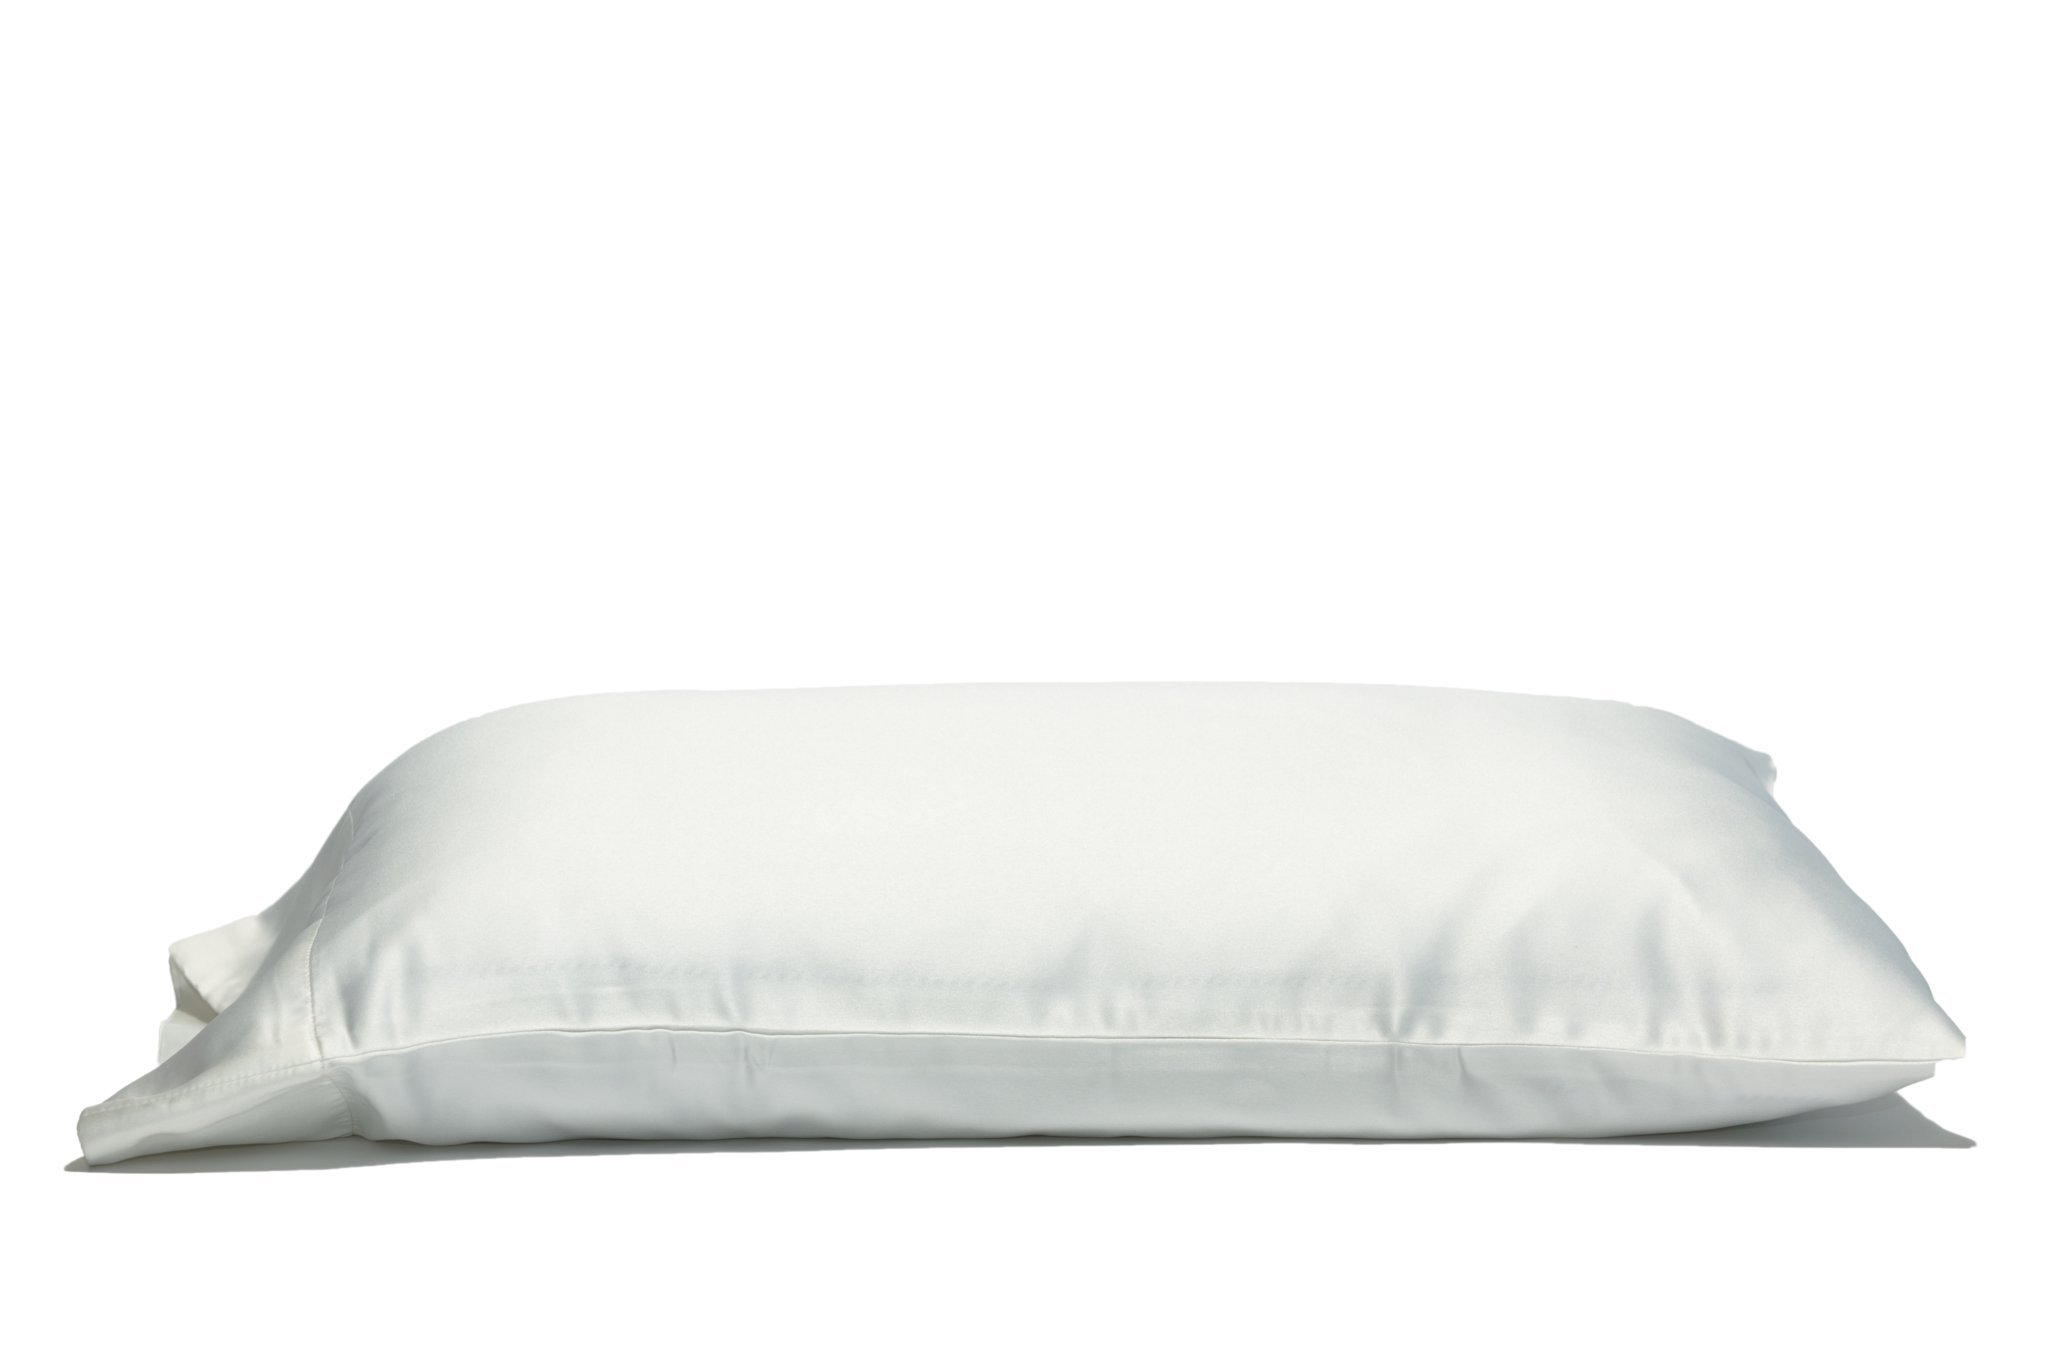 Savvy Sleepers - Savvy Sleepers Anti-Aging 100% Satin Pillowcase White Russian - Standard 20 in x 30 in